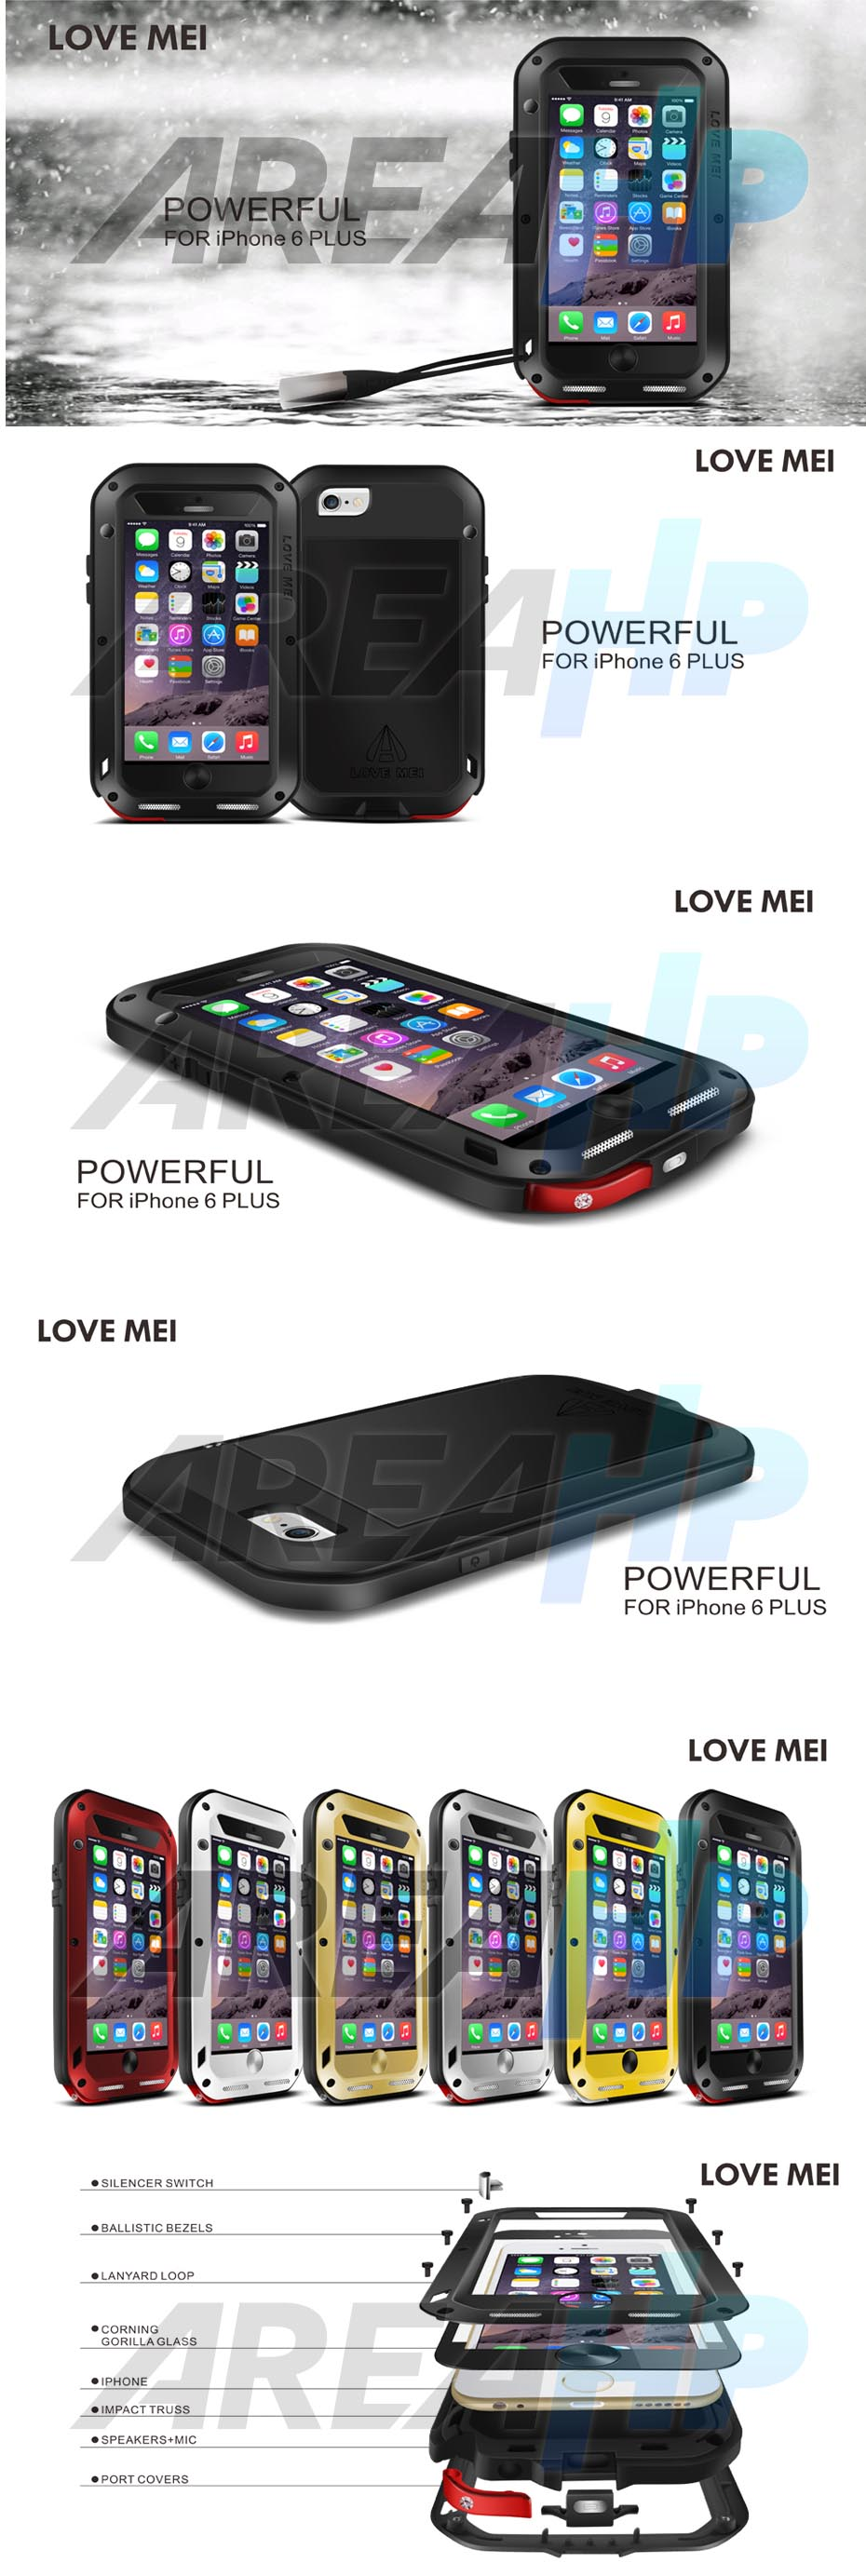 Love Mei Powerful Case for iPhone 6 plus Overview